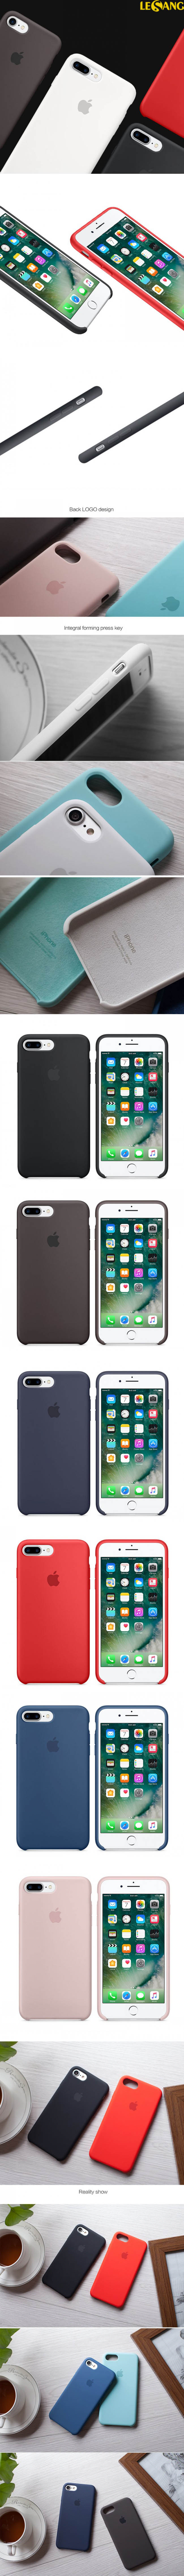 Ốp lưng iphone 7 Plus Apple Case Silicon chính hãng 100%, Full Box - 5